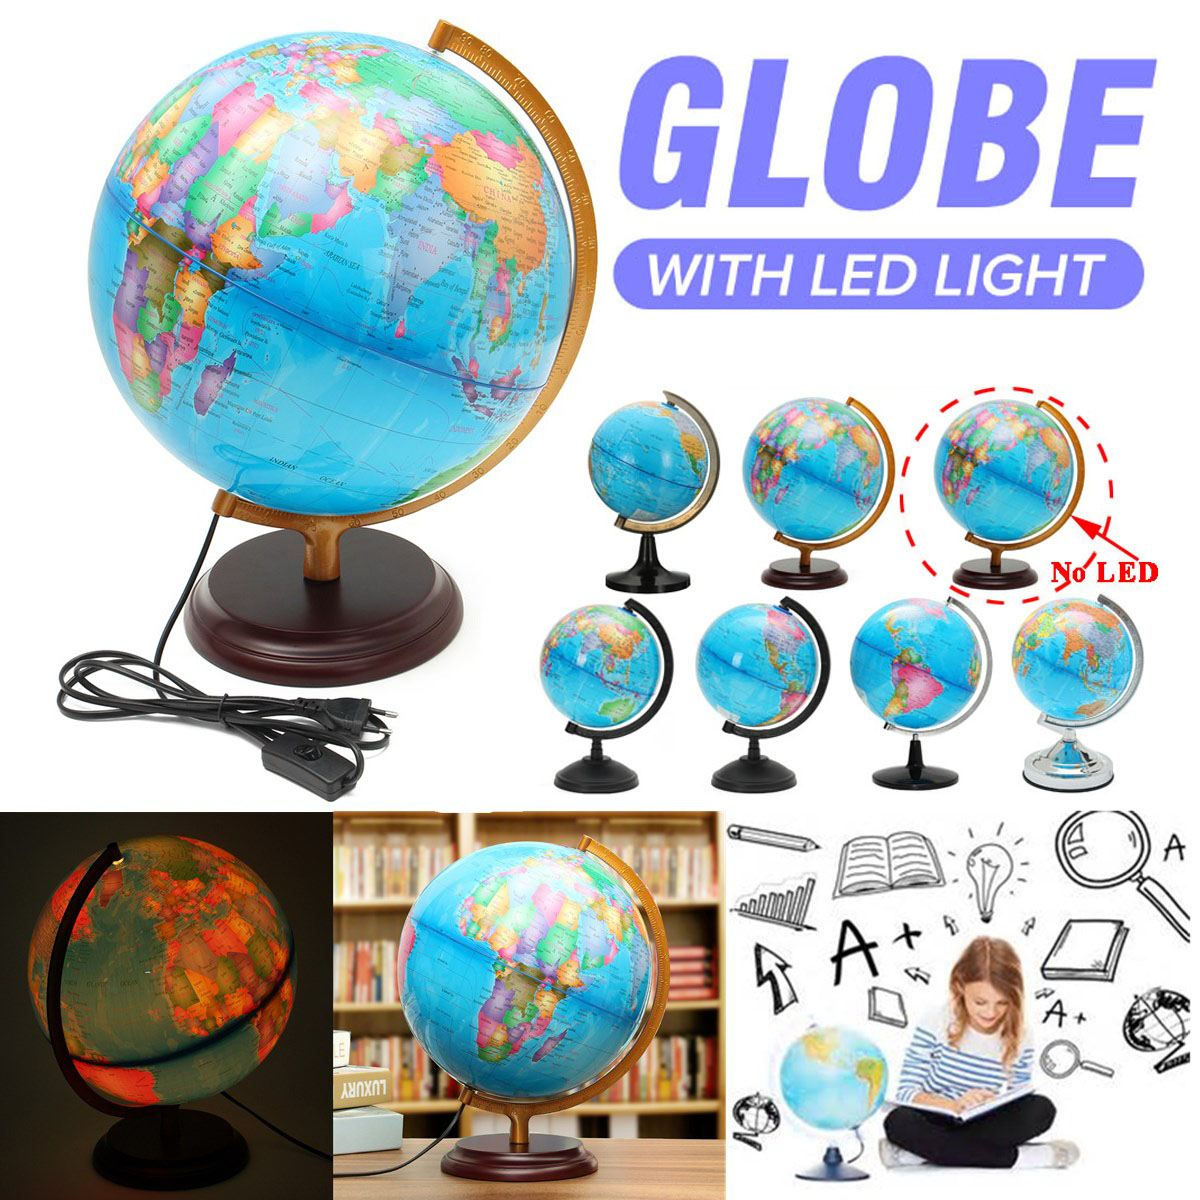 32cm Illuminated World Globe 4 Way Touch Control Lamp Light for Indoors-Gold